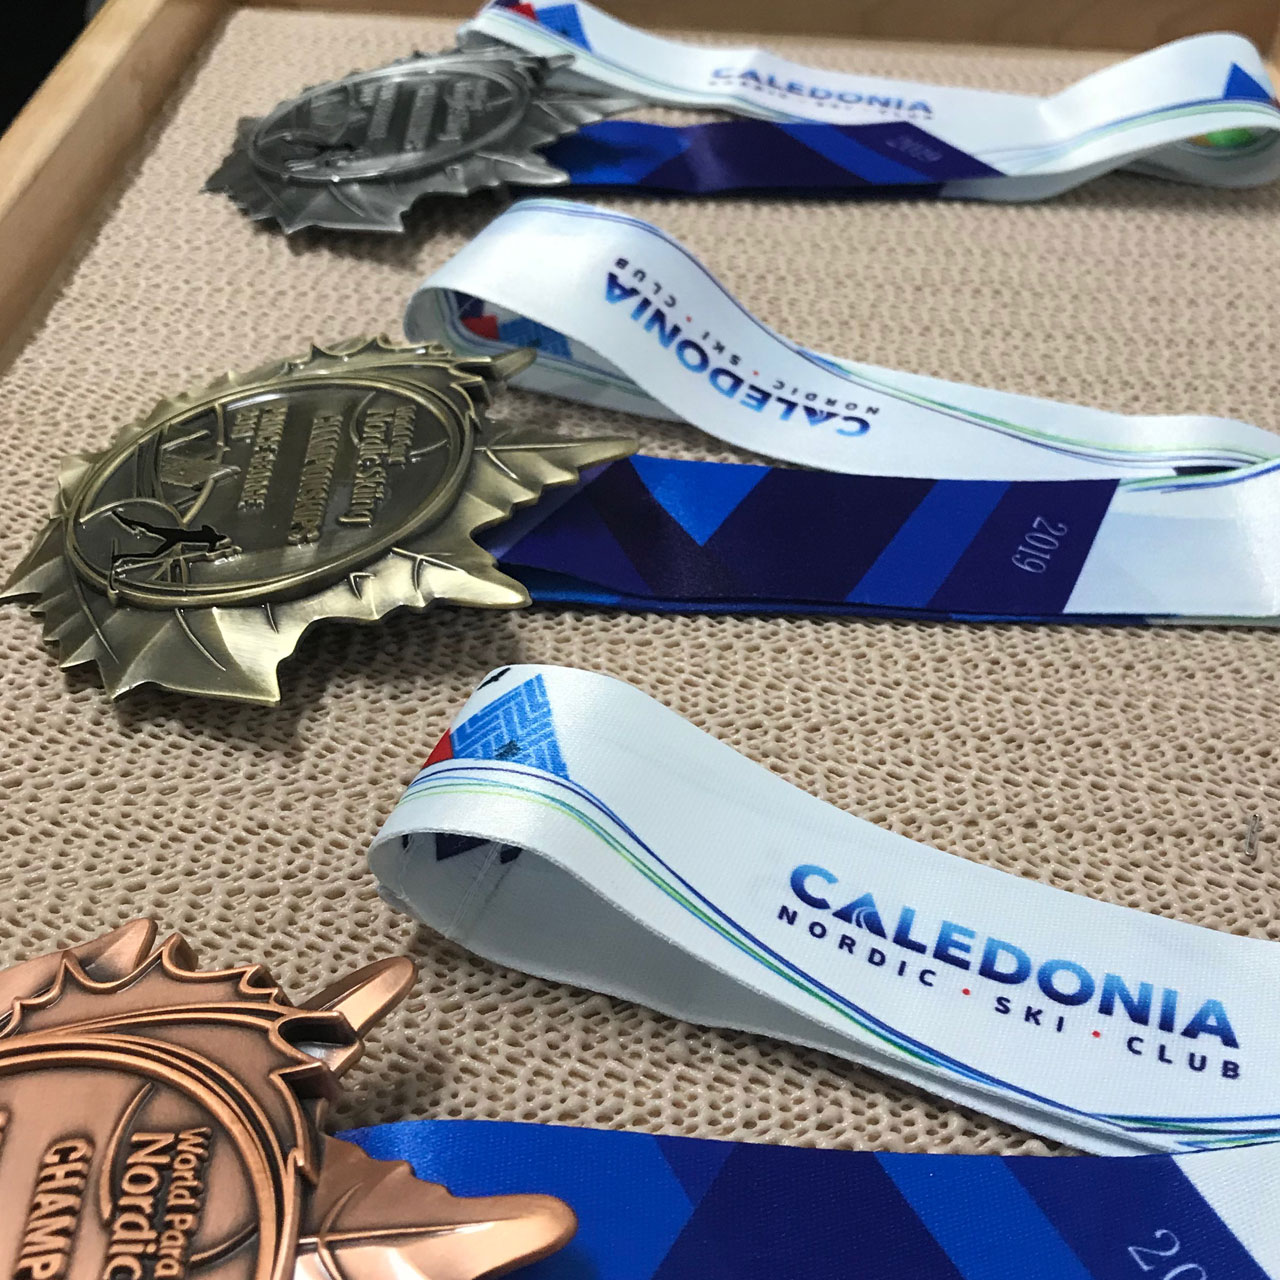 world-para-nordic-medals-on-tray